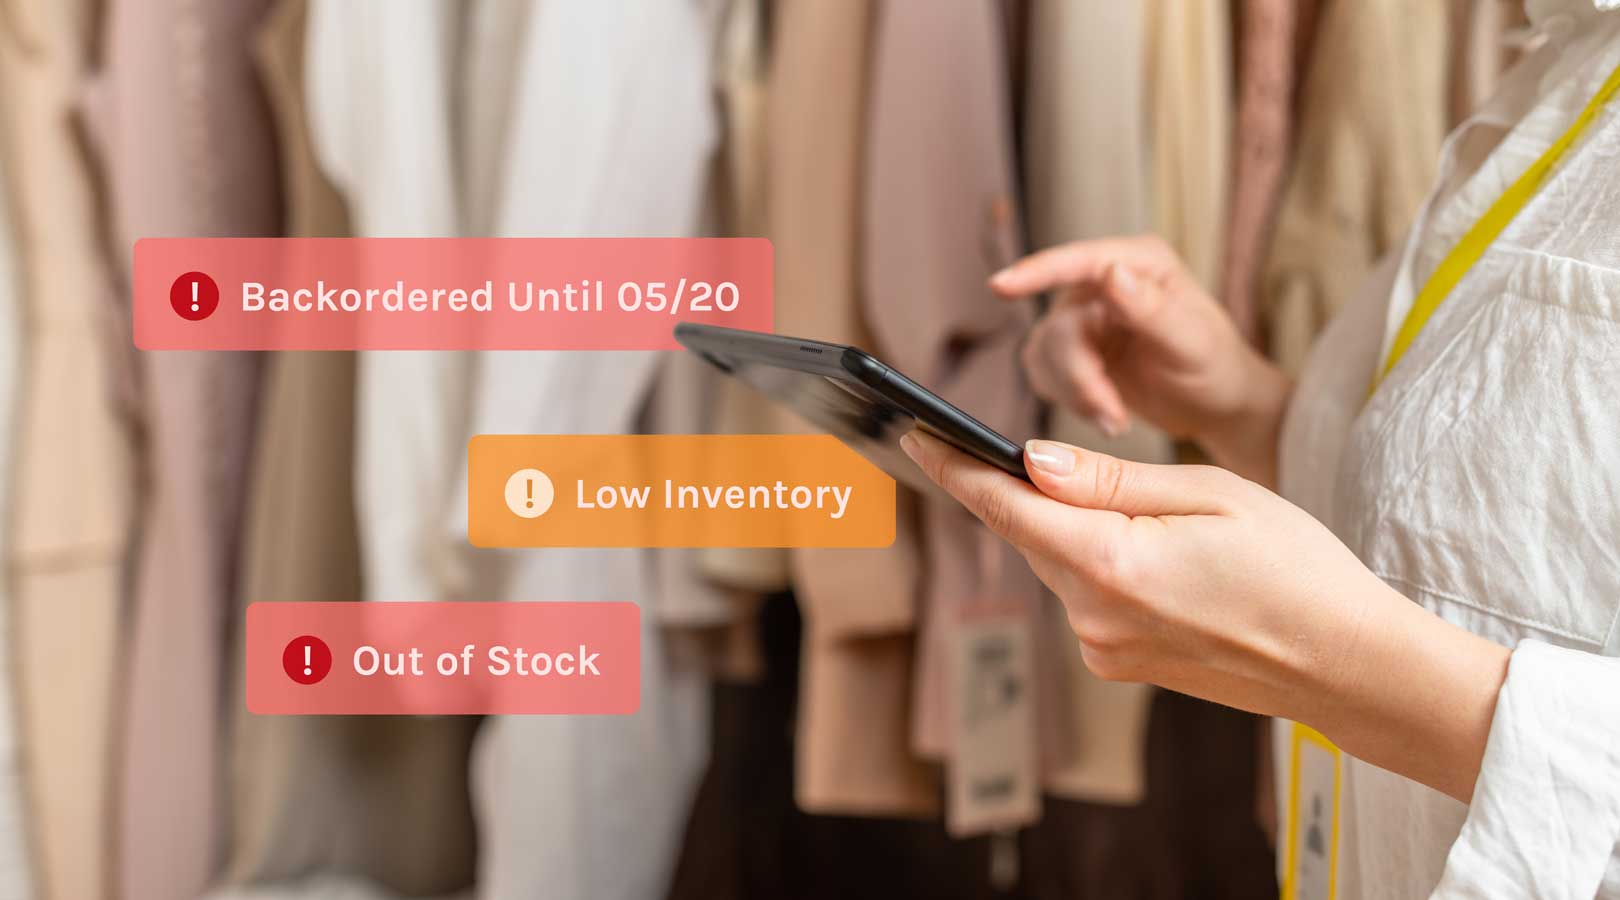 How To Prevent And Manage Backorders